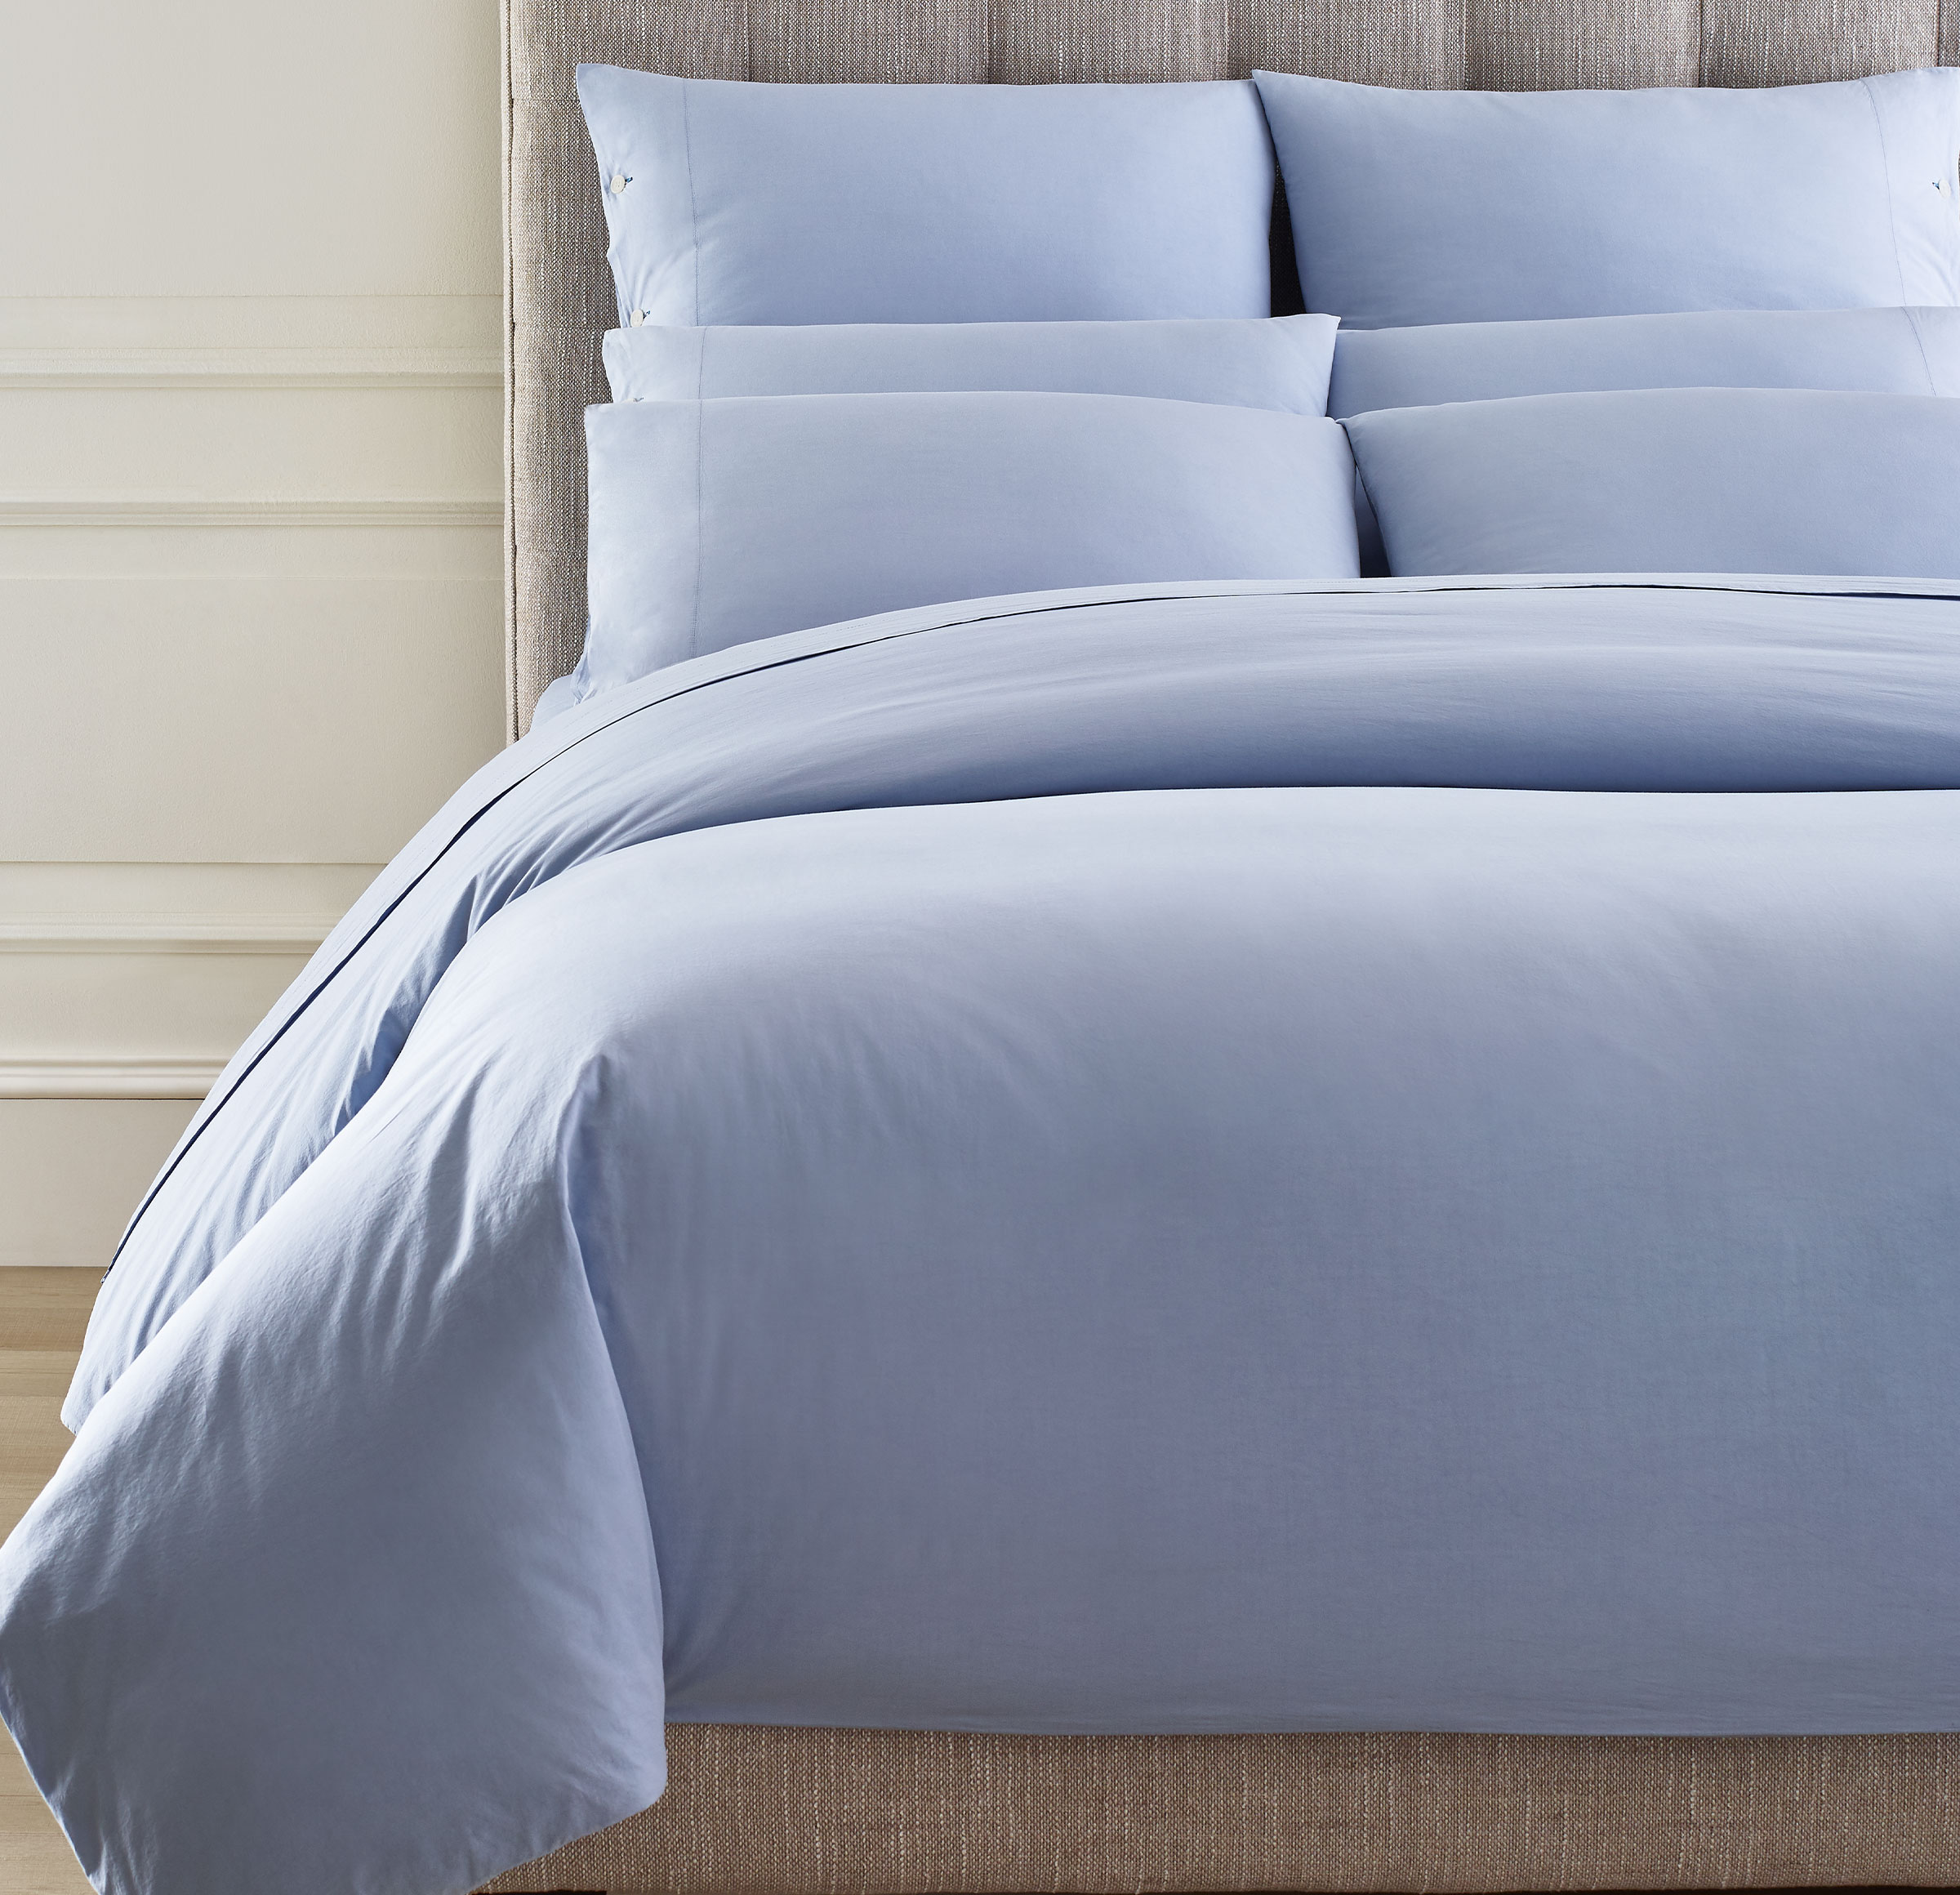 EXPOSED BUTTON VINTAGE WASHED COTTON PERCALE DUVET COVER AND SHAMS, , hi-res